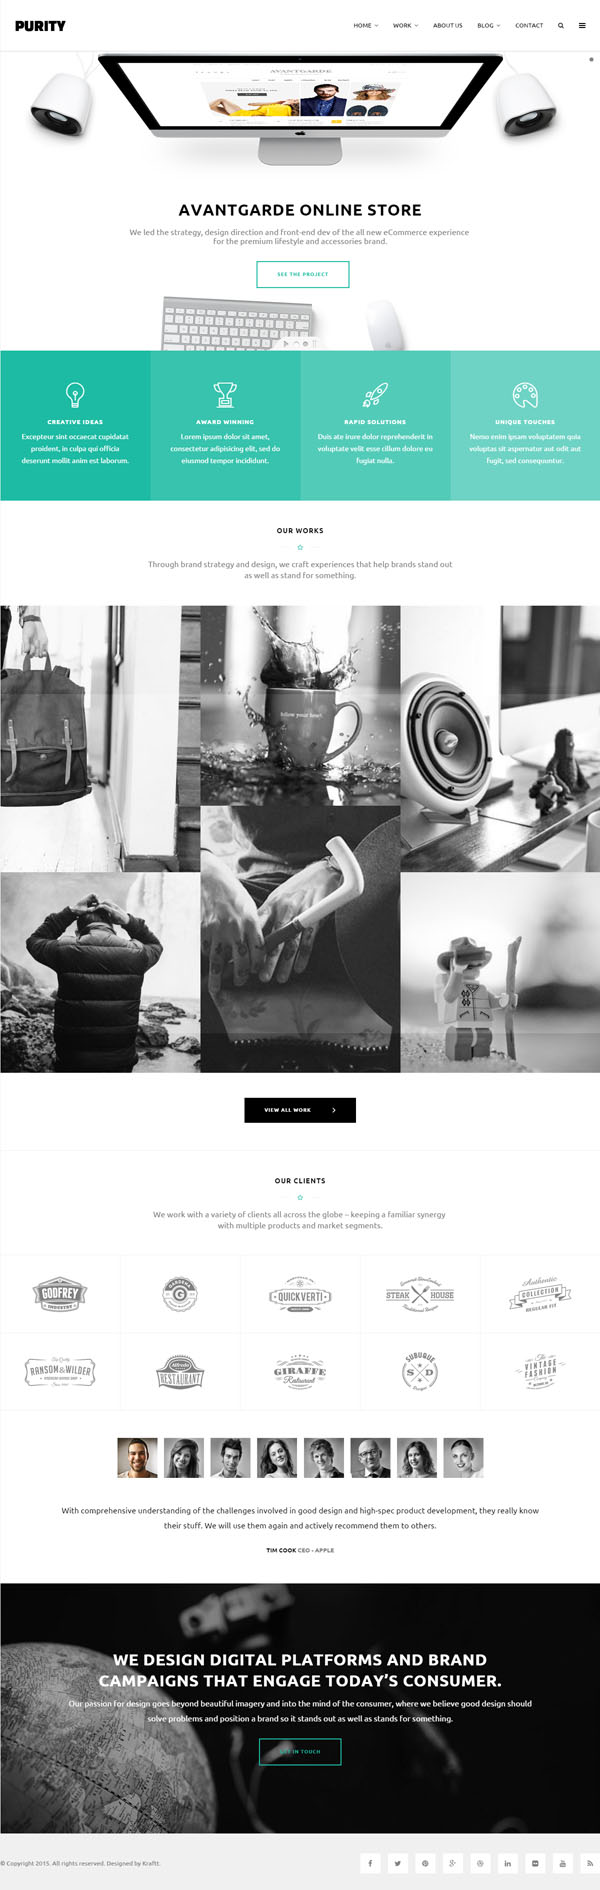 16 New Responsive HTML5 CSS3 Website Templates | Design | Graphic ...